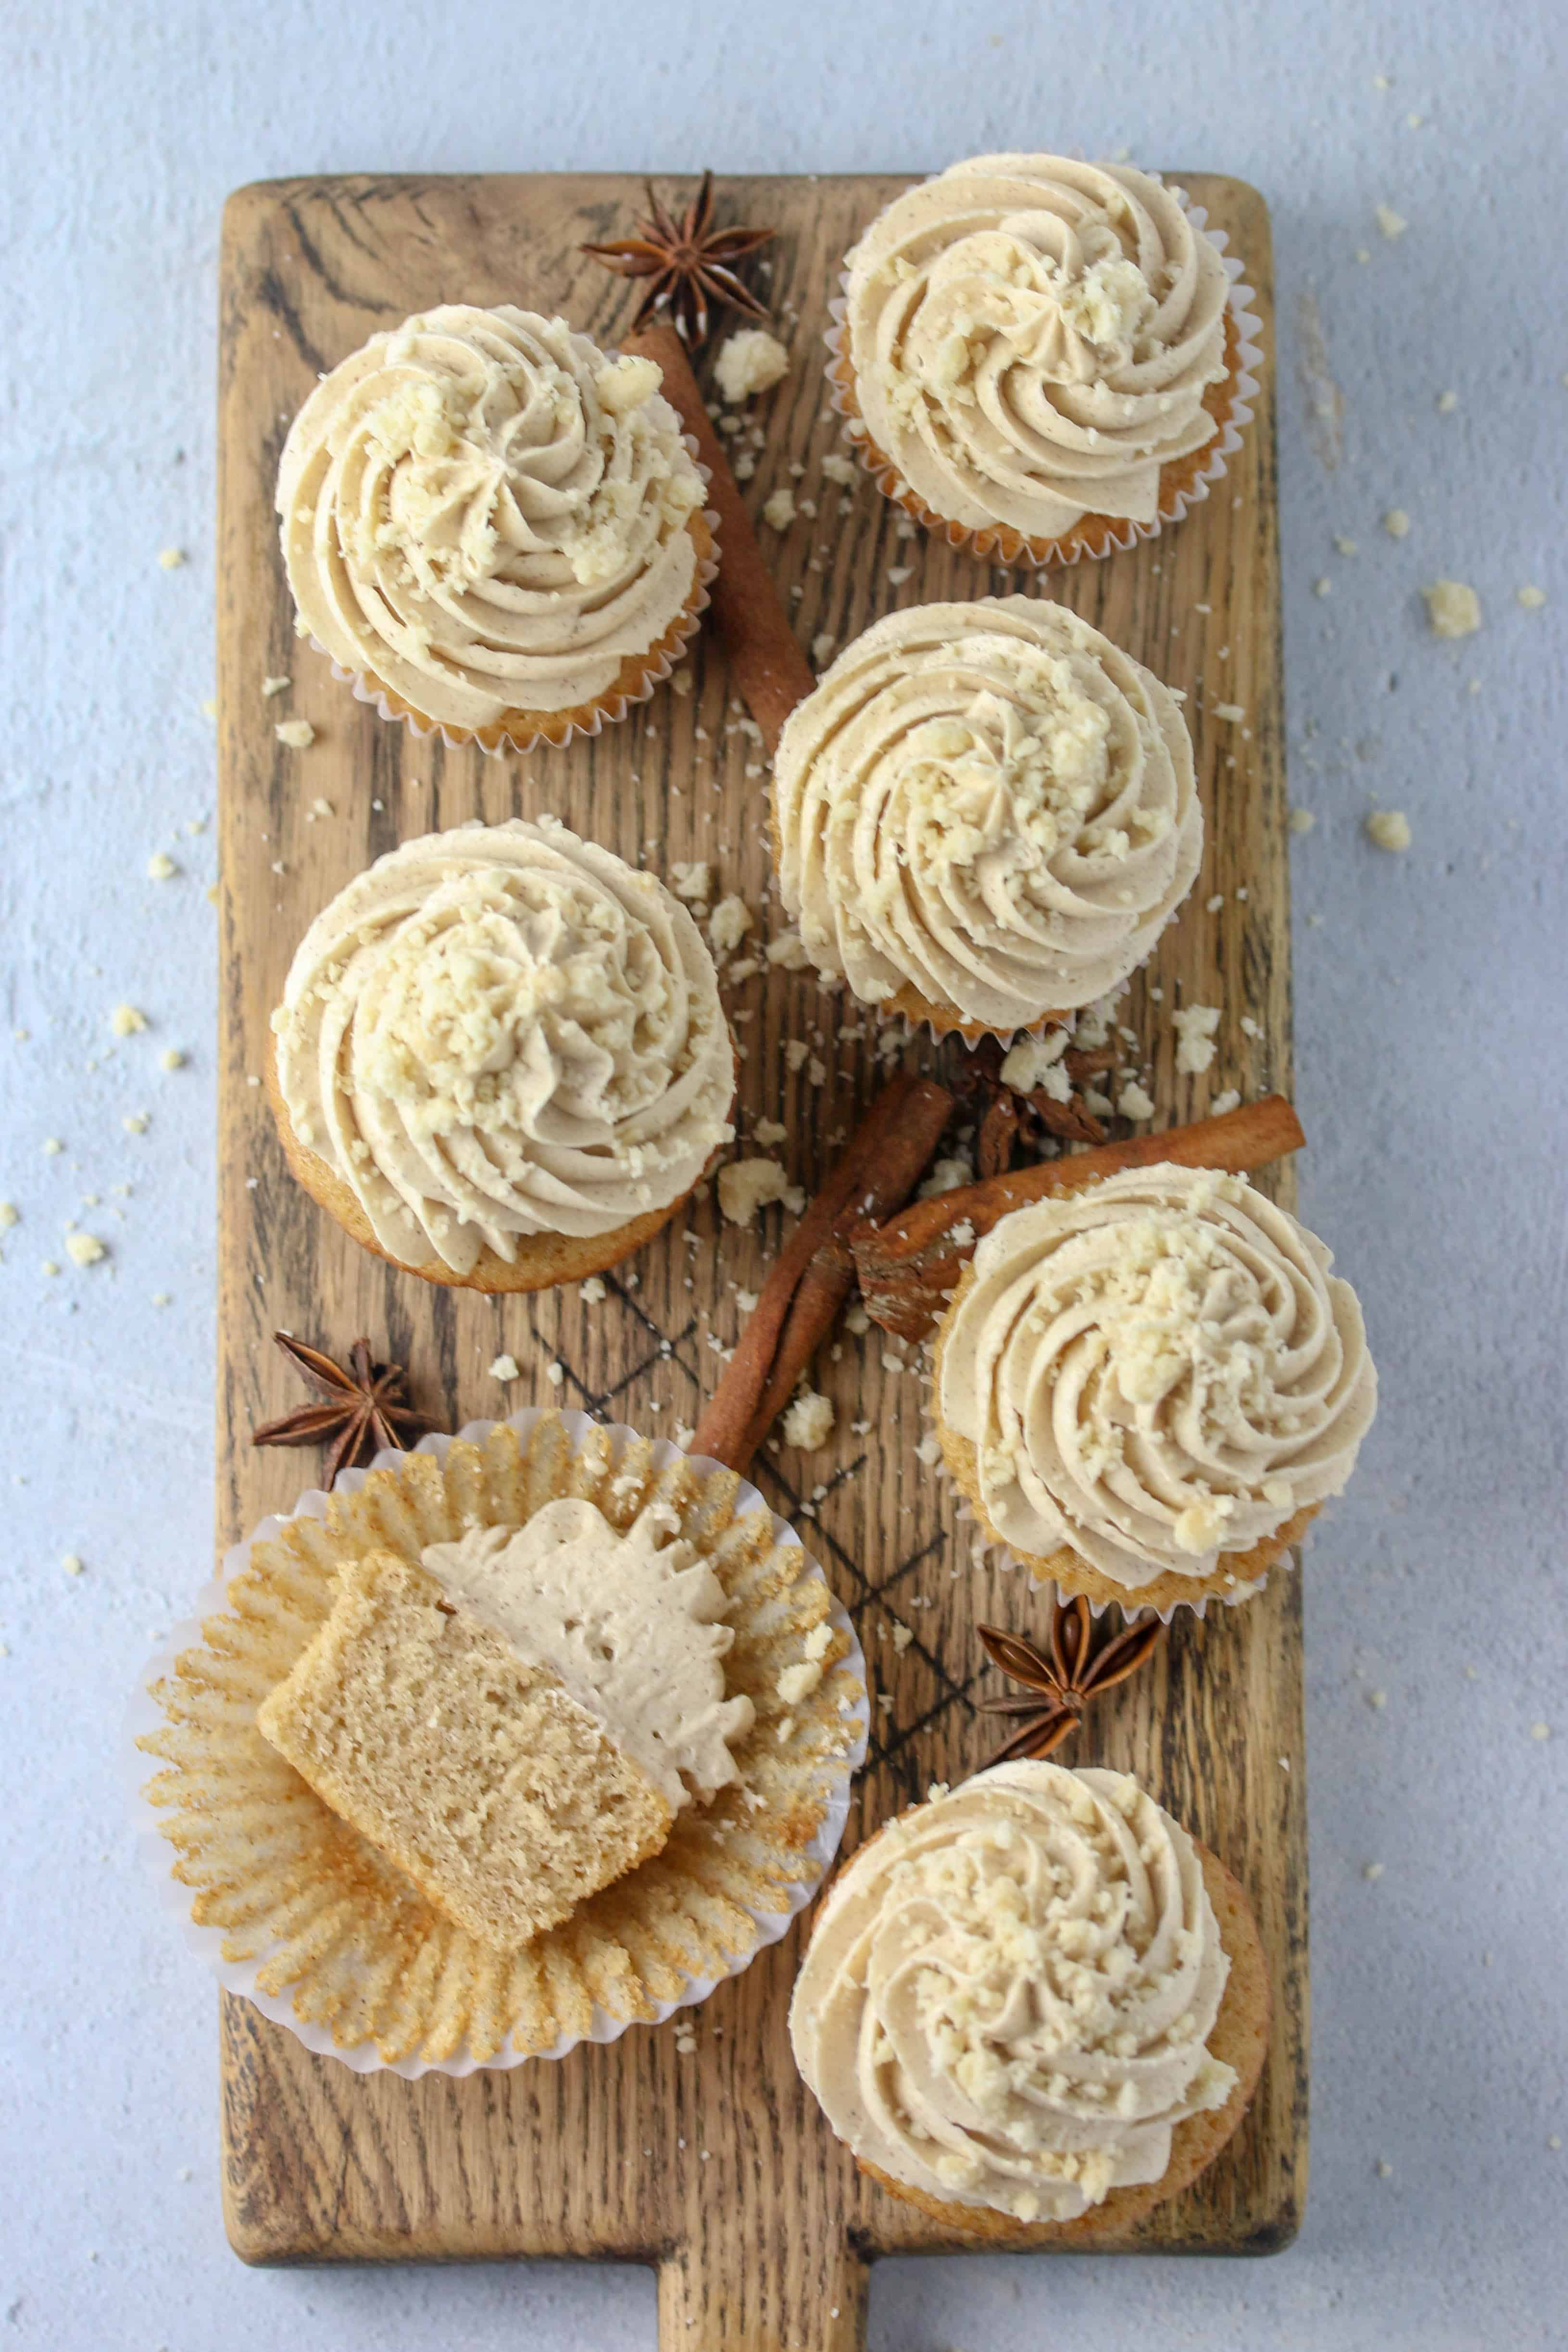 apple cider cupcakes on a cutting board